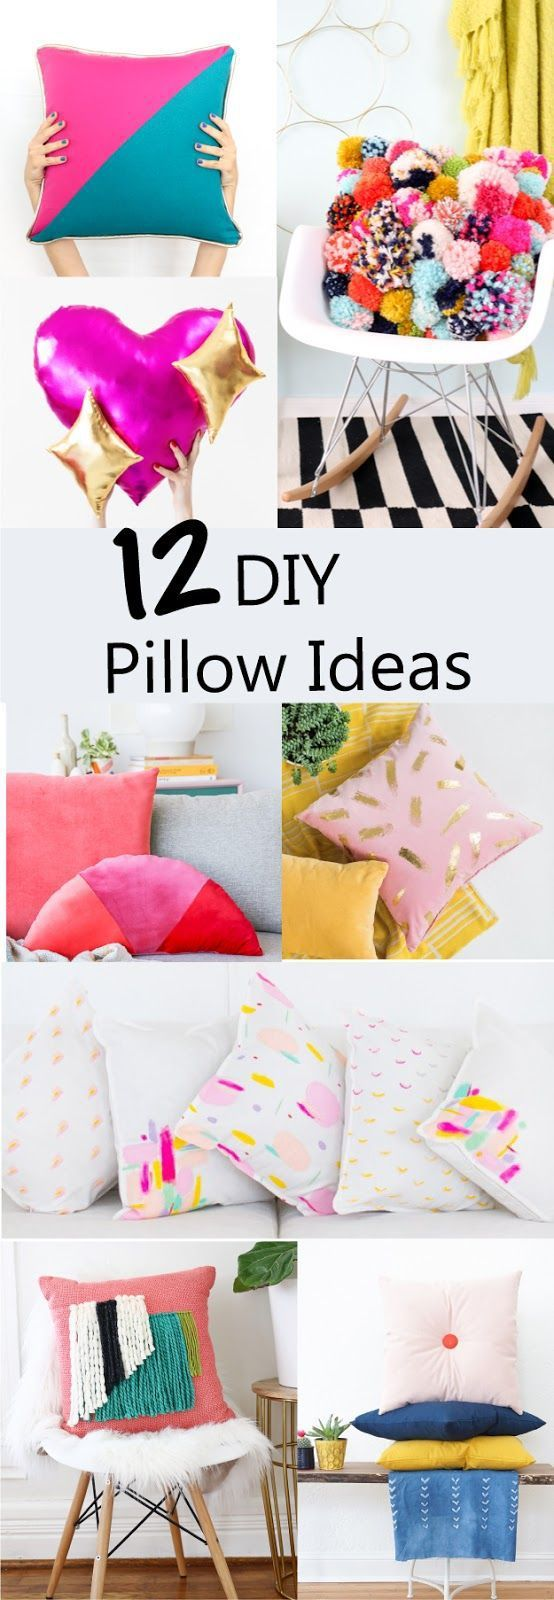 12 DIY Throw Pillow Ideas - How to sew a pillow - trendy modern pillows - home decor - pom poms - velvet - woven - emoji - pretzel - abstract art - craft ...